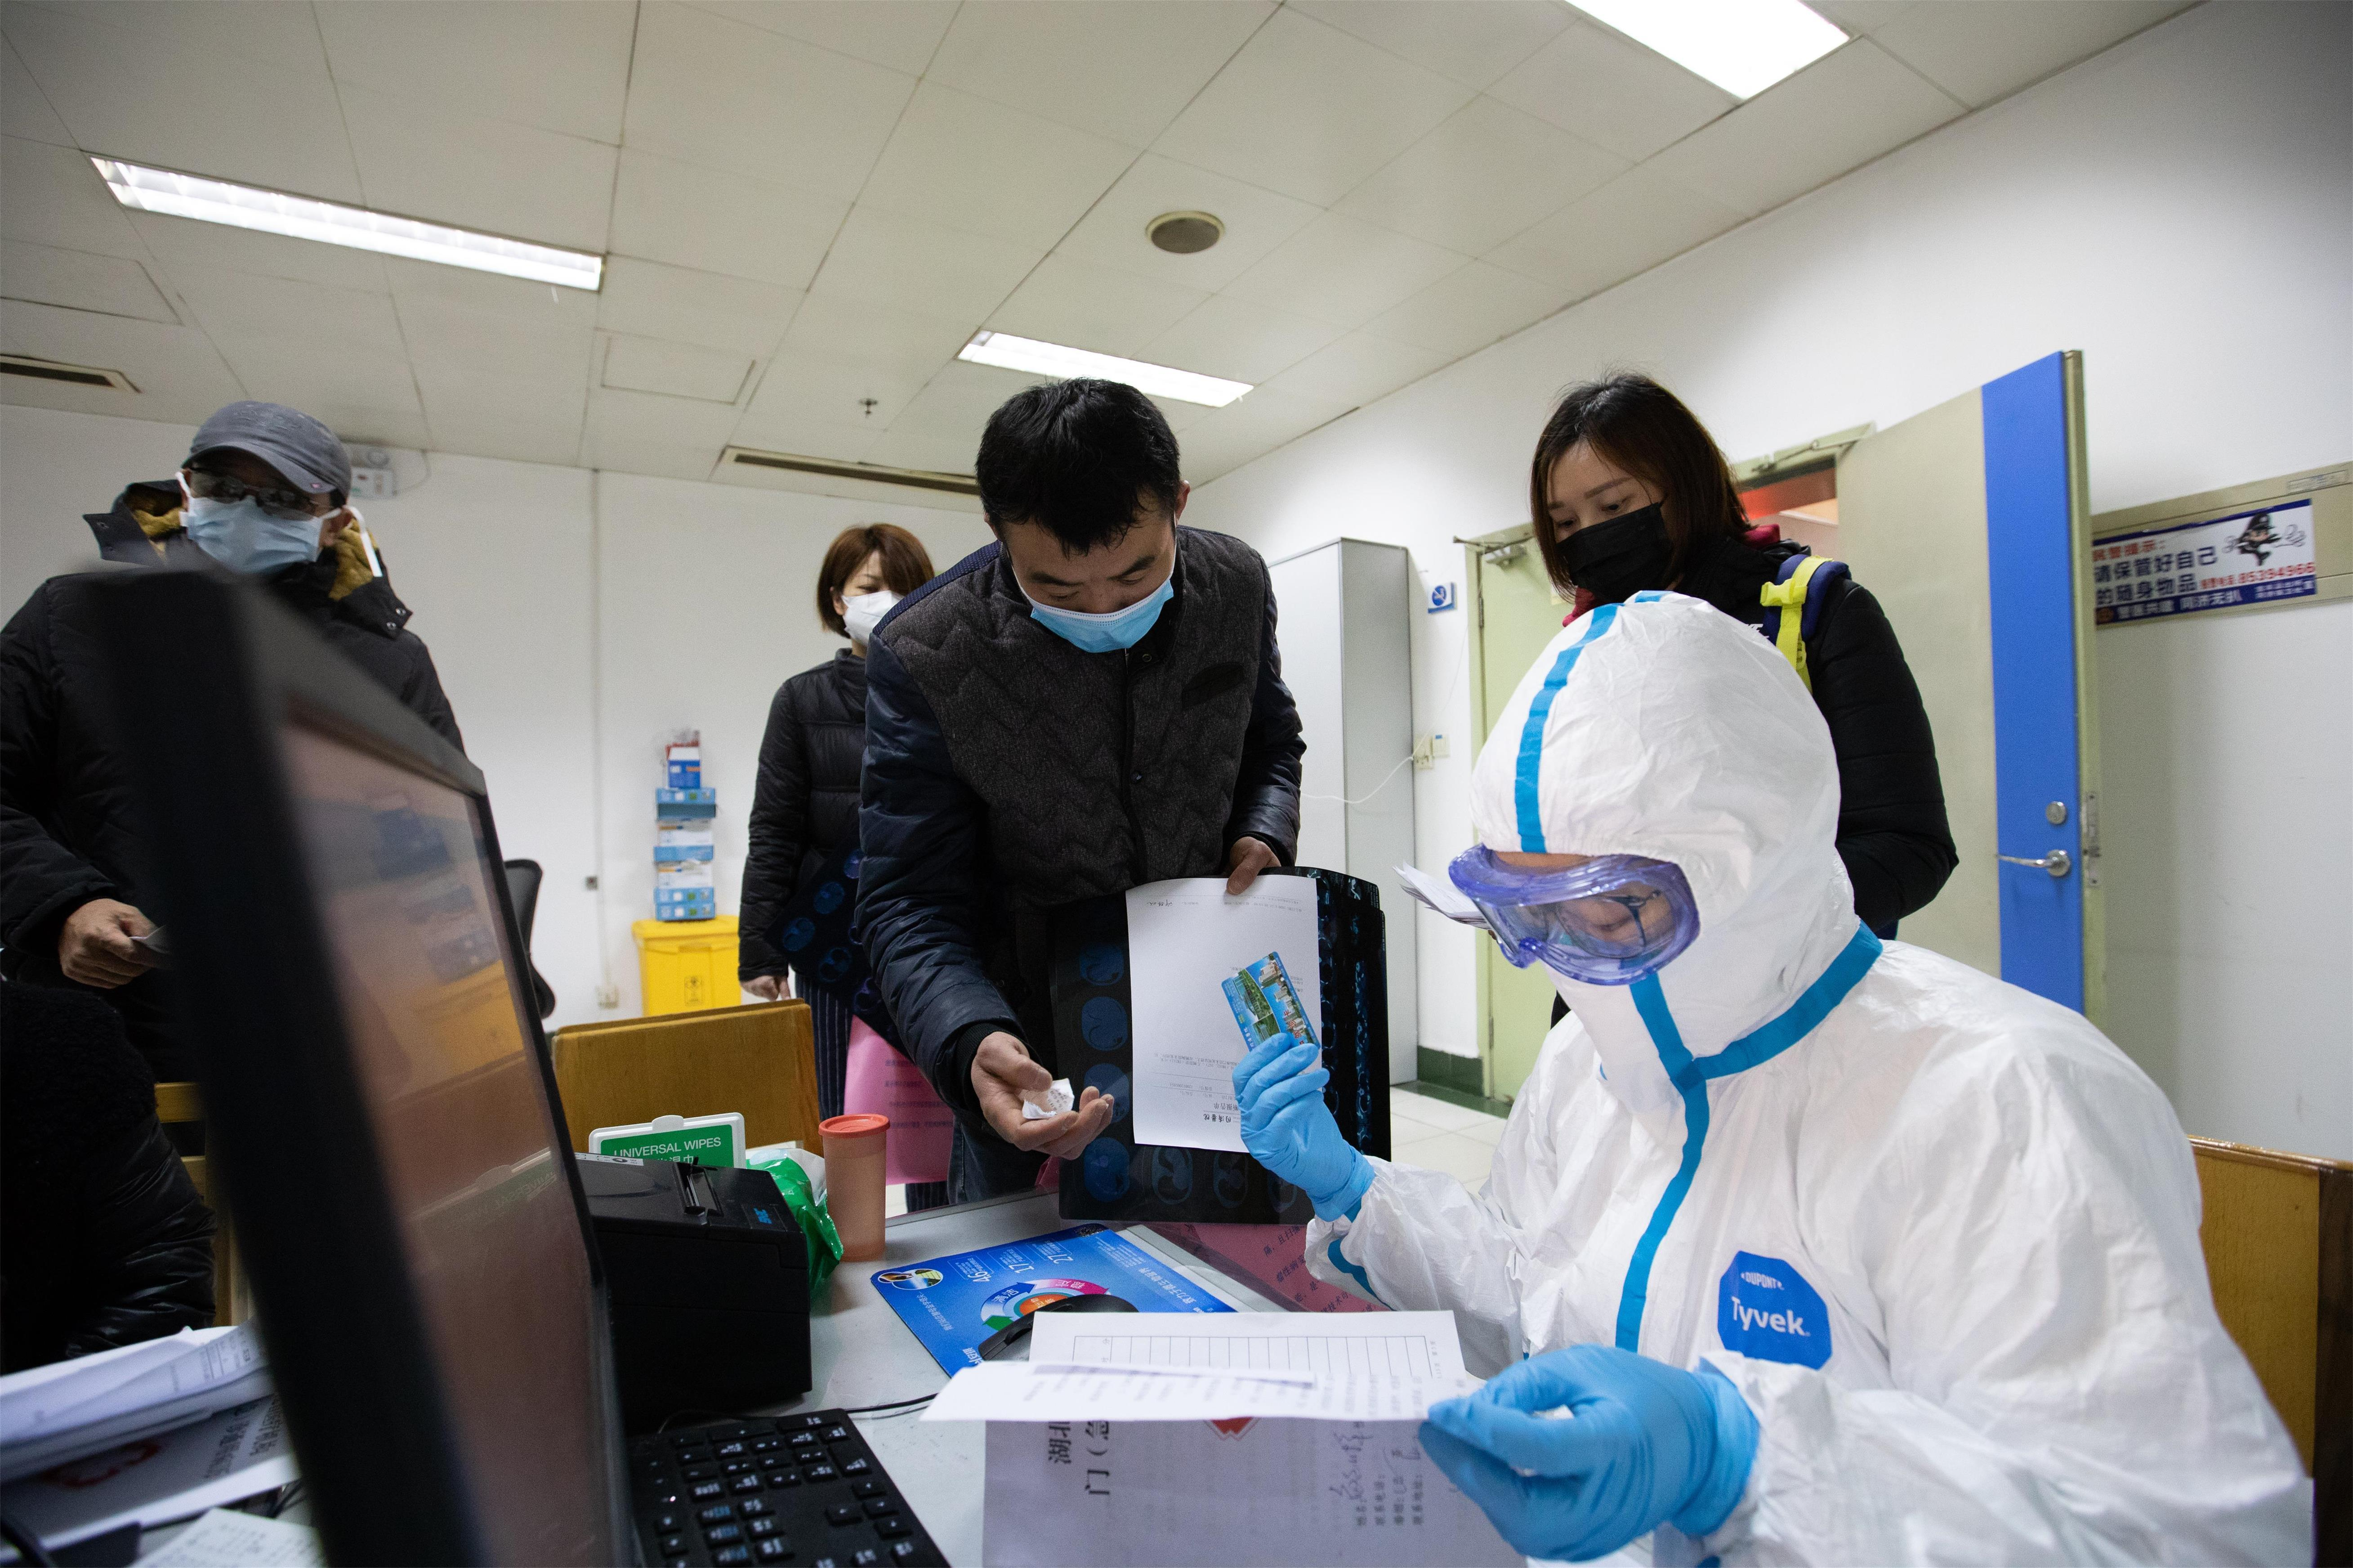 The medical staff wearing protection suit and fight with the novel coronavirus epidemic in Wuhan,Hubei,China on 21th January, 2020.(Photo by TPG/cnsphotos) (Photo by Top Photo/Sipa USA)